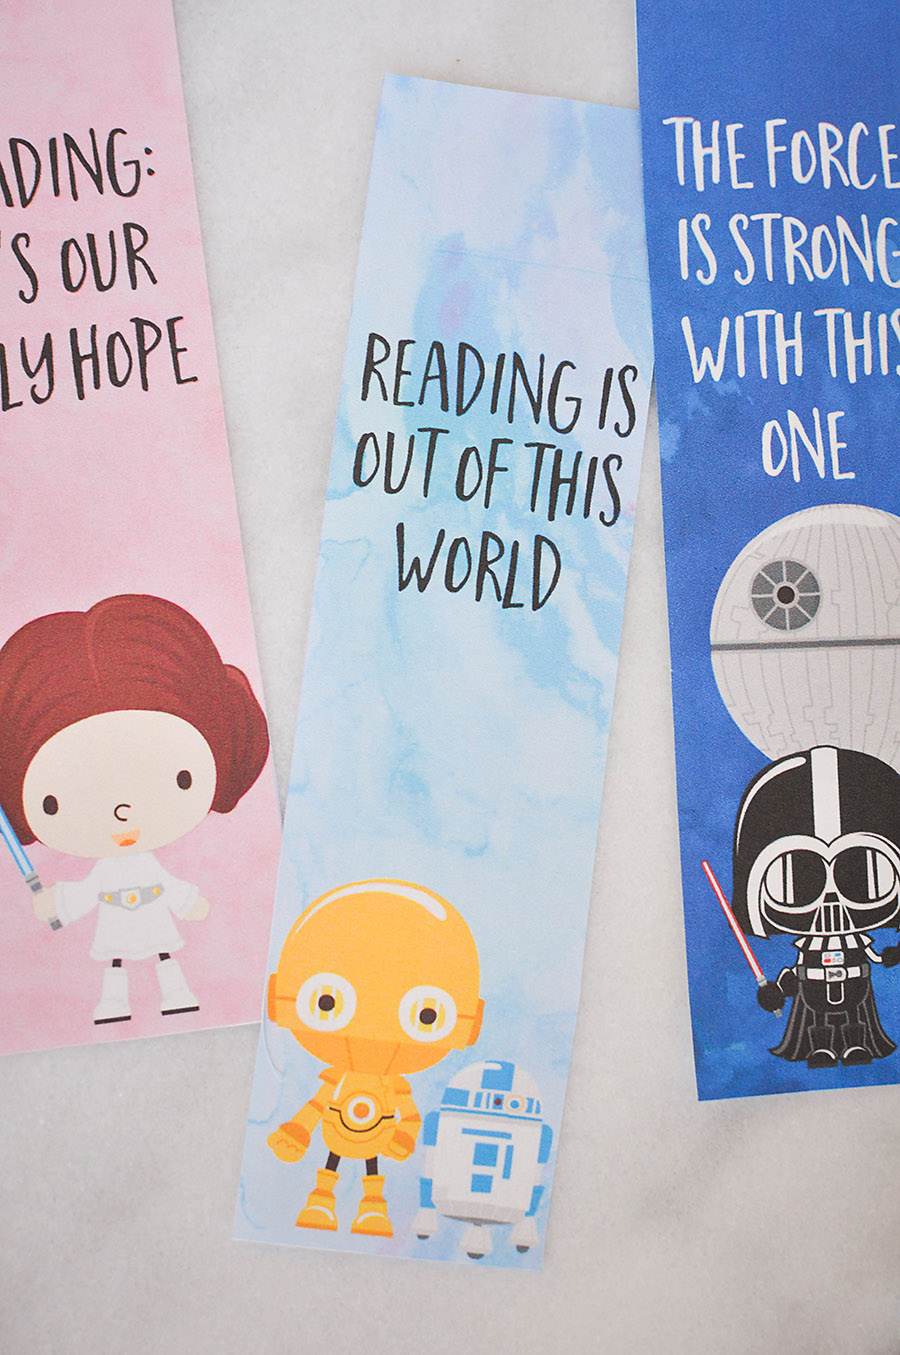 picture relating to Star Wars Bookmark Printable called Star Wars Bookmarks - Totally free Printables for Children - Our